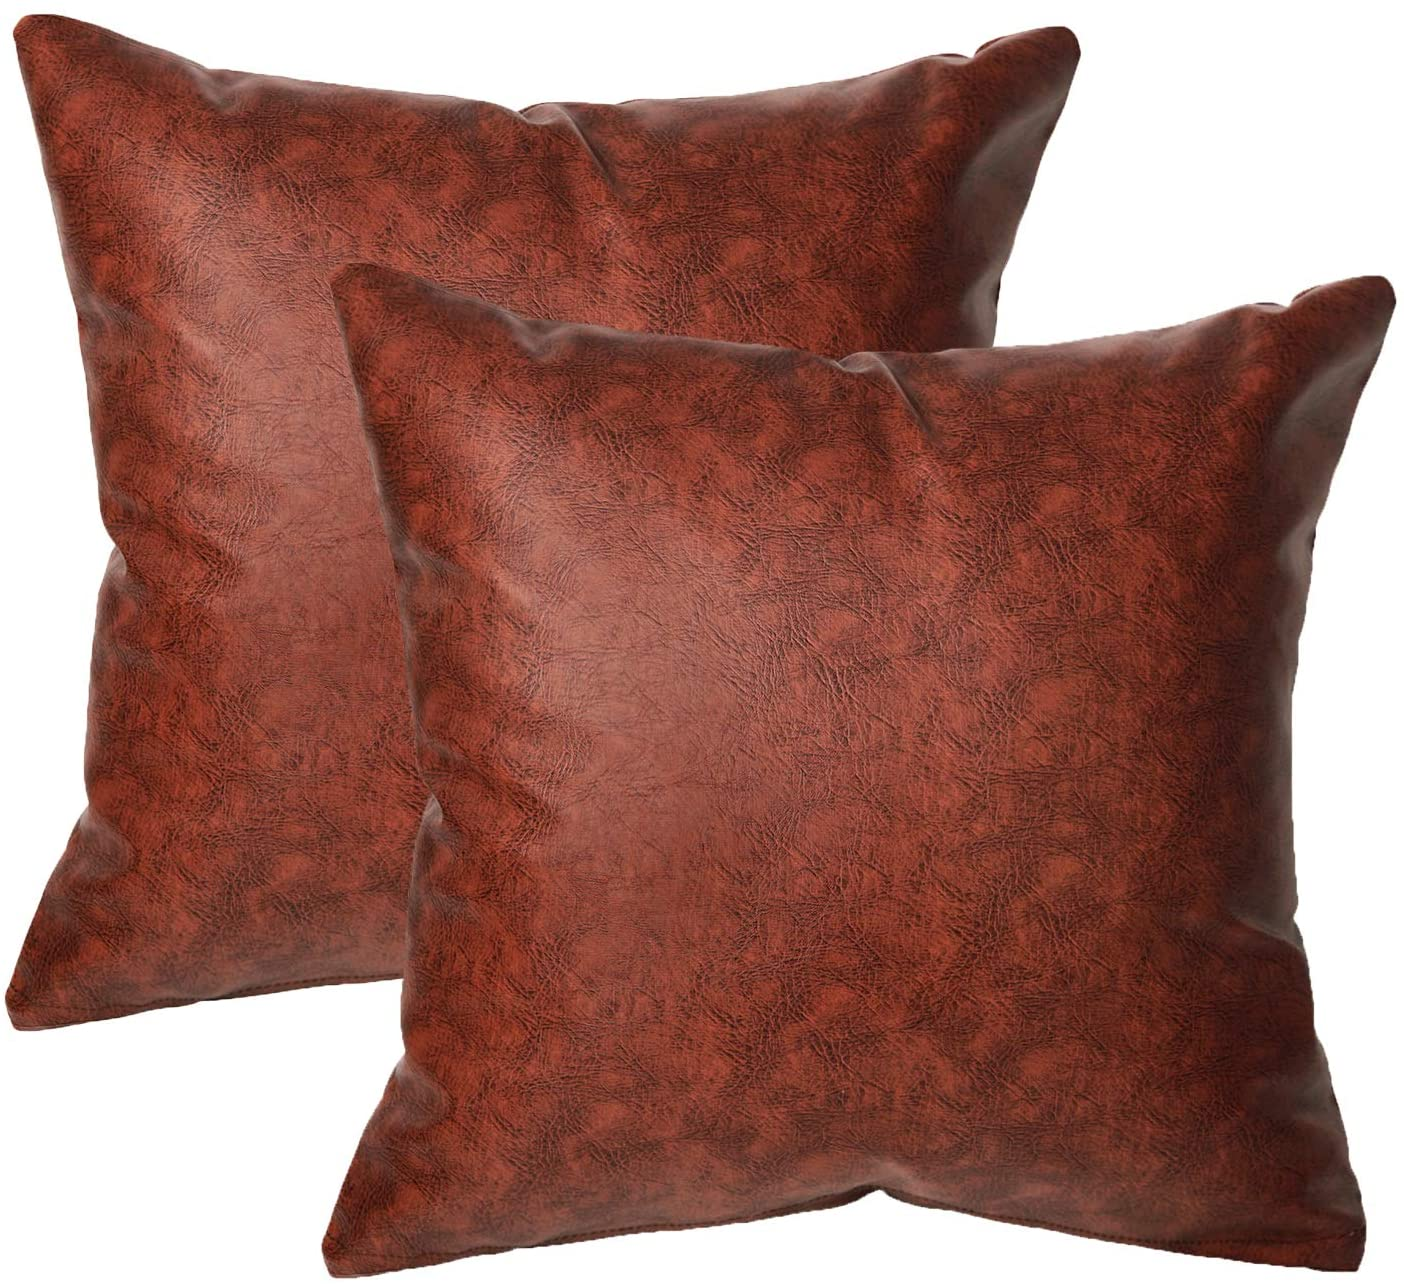 cygnus Pack 2 Feaux Leather Pillow Cover 18 x18inches Farmhouse Modern Look Brown Pillow Case Home Decorative Couch Cover (Brown)